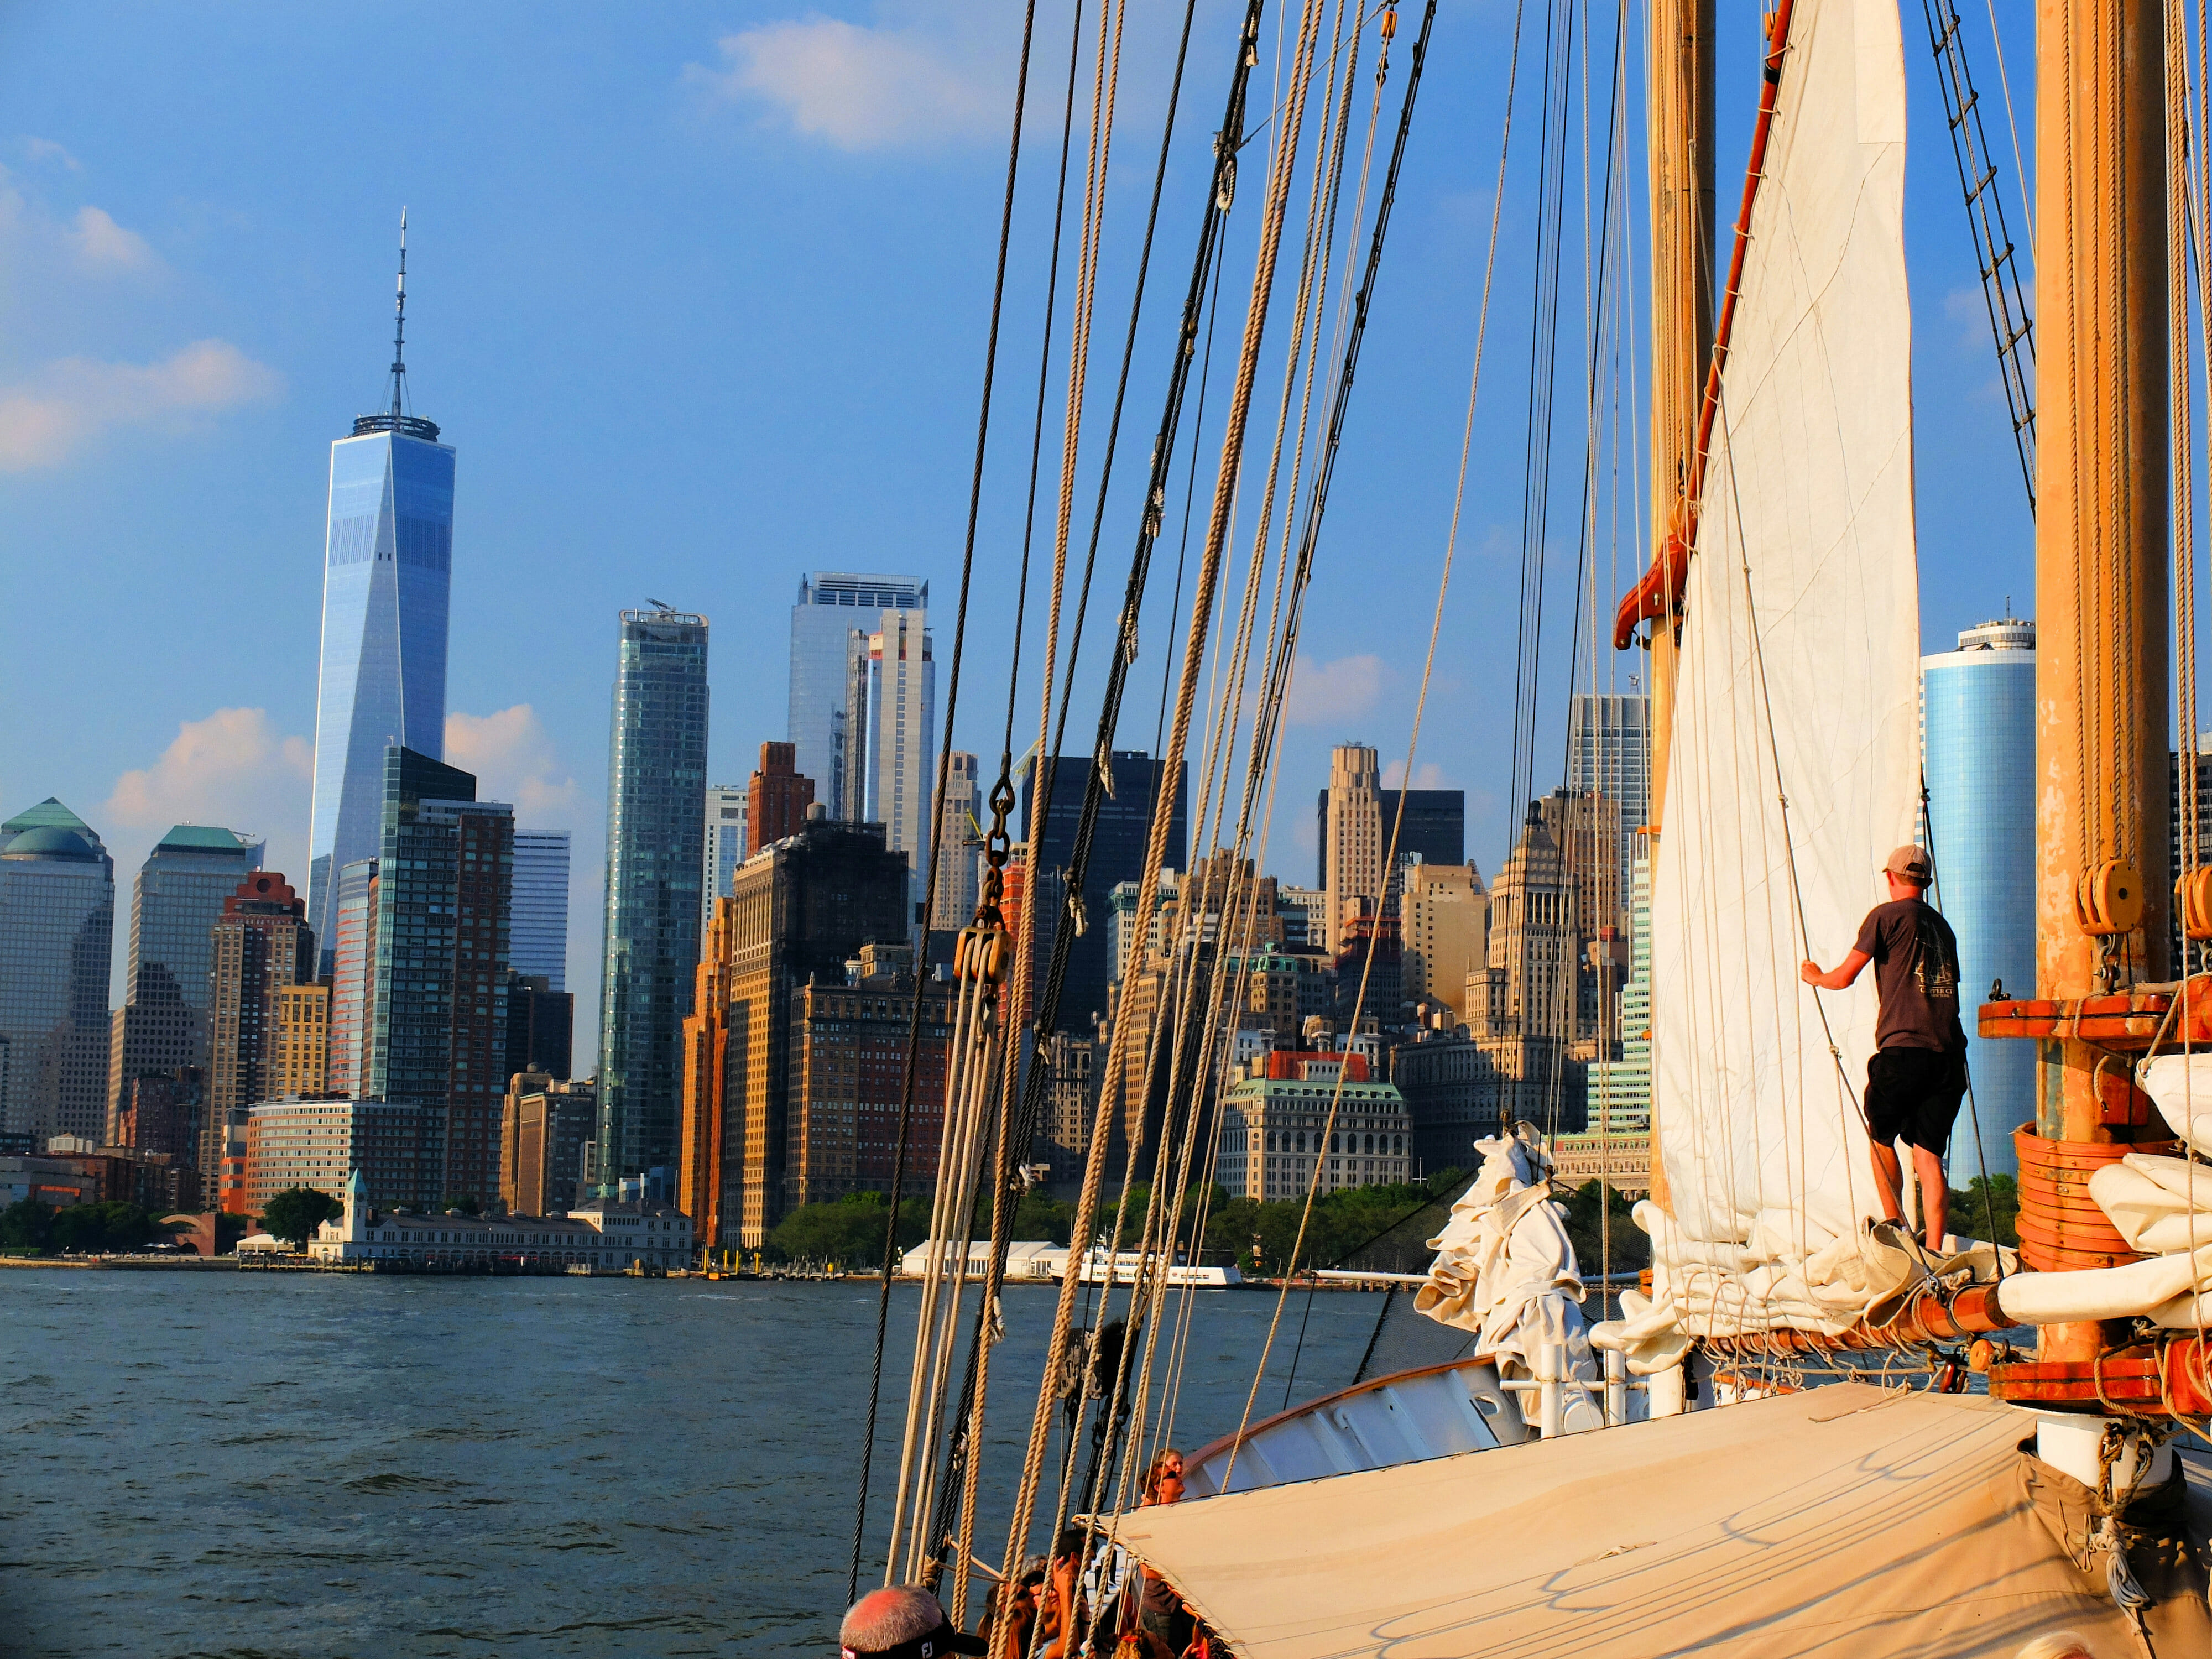 View Downtown New York from Sailboat – High Quality Wallpaper